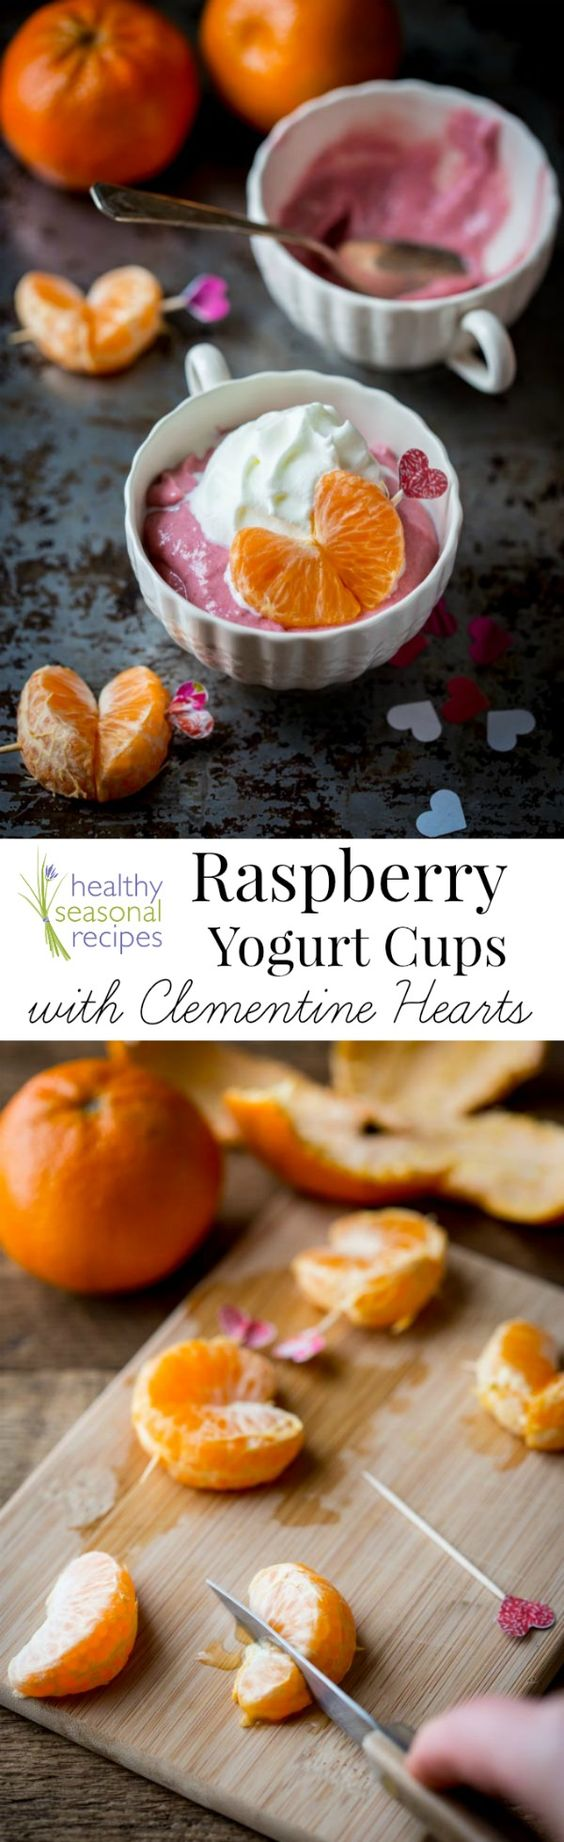 Blog post at Healthy Seasonal Recipes : These pretty pink raspberry yogurt cupsare a candy-free way to celebrate Valentine's Day and have no added sugar. They are topped off with[..]